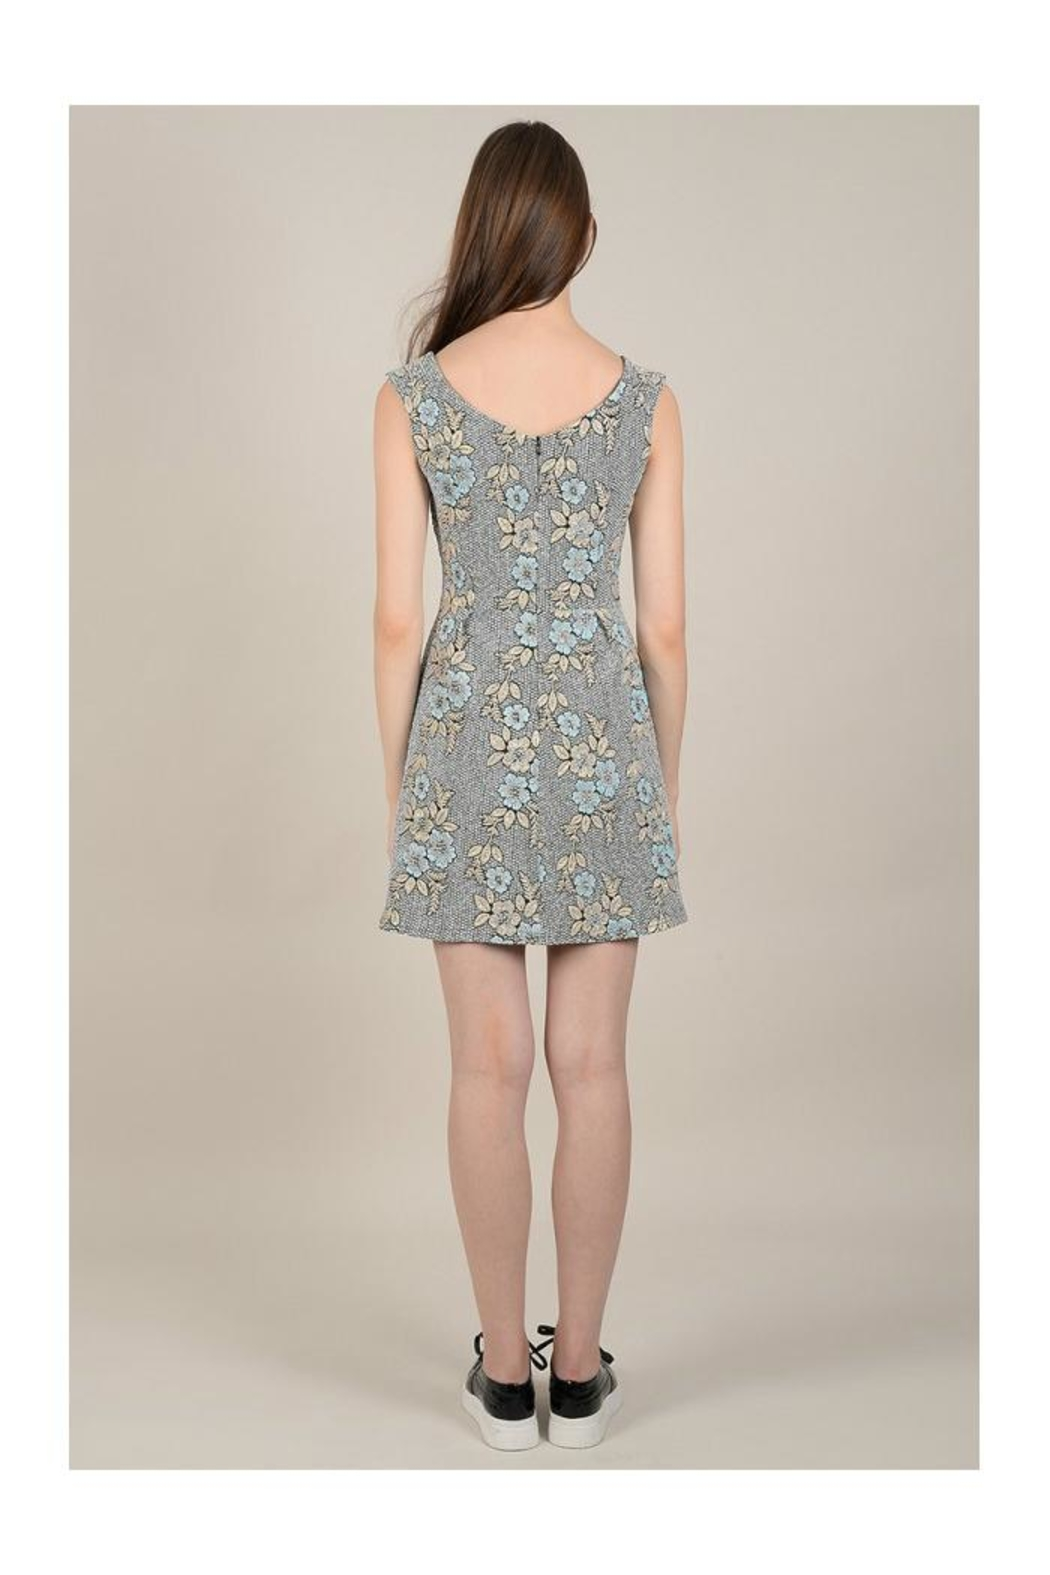 Molly Bracken Floral Print Dress - Back Cropped Image